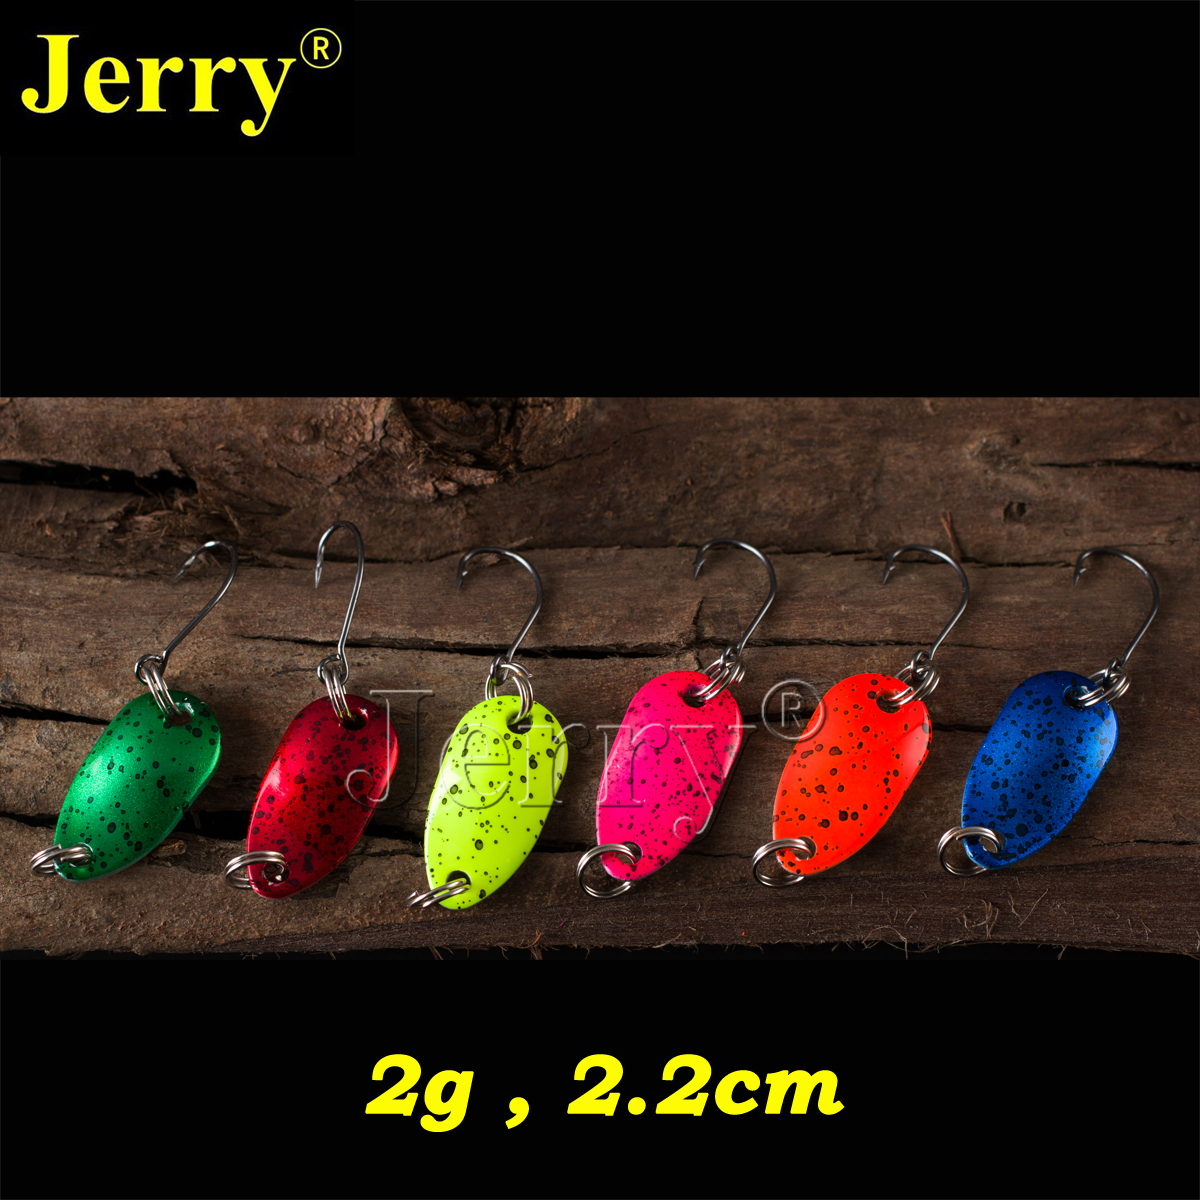 Jerry 6pcs 2g pesca mikro mini troftë